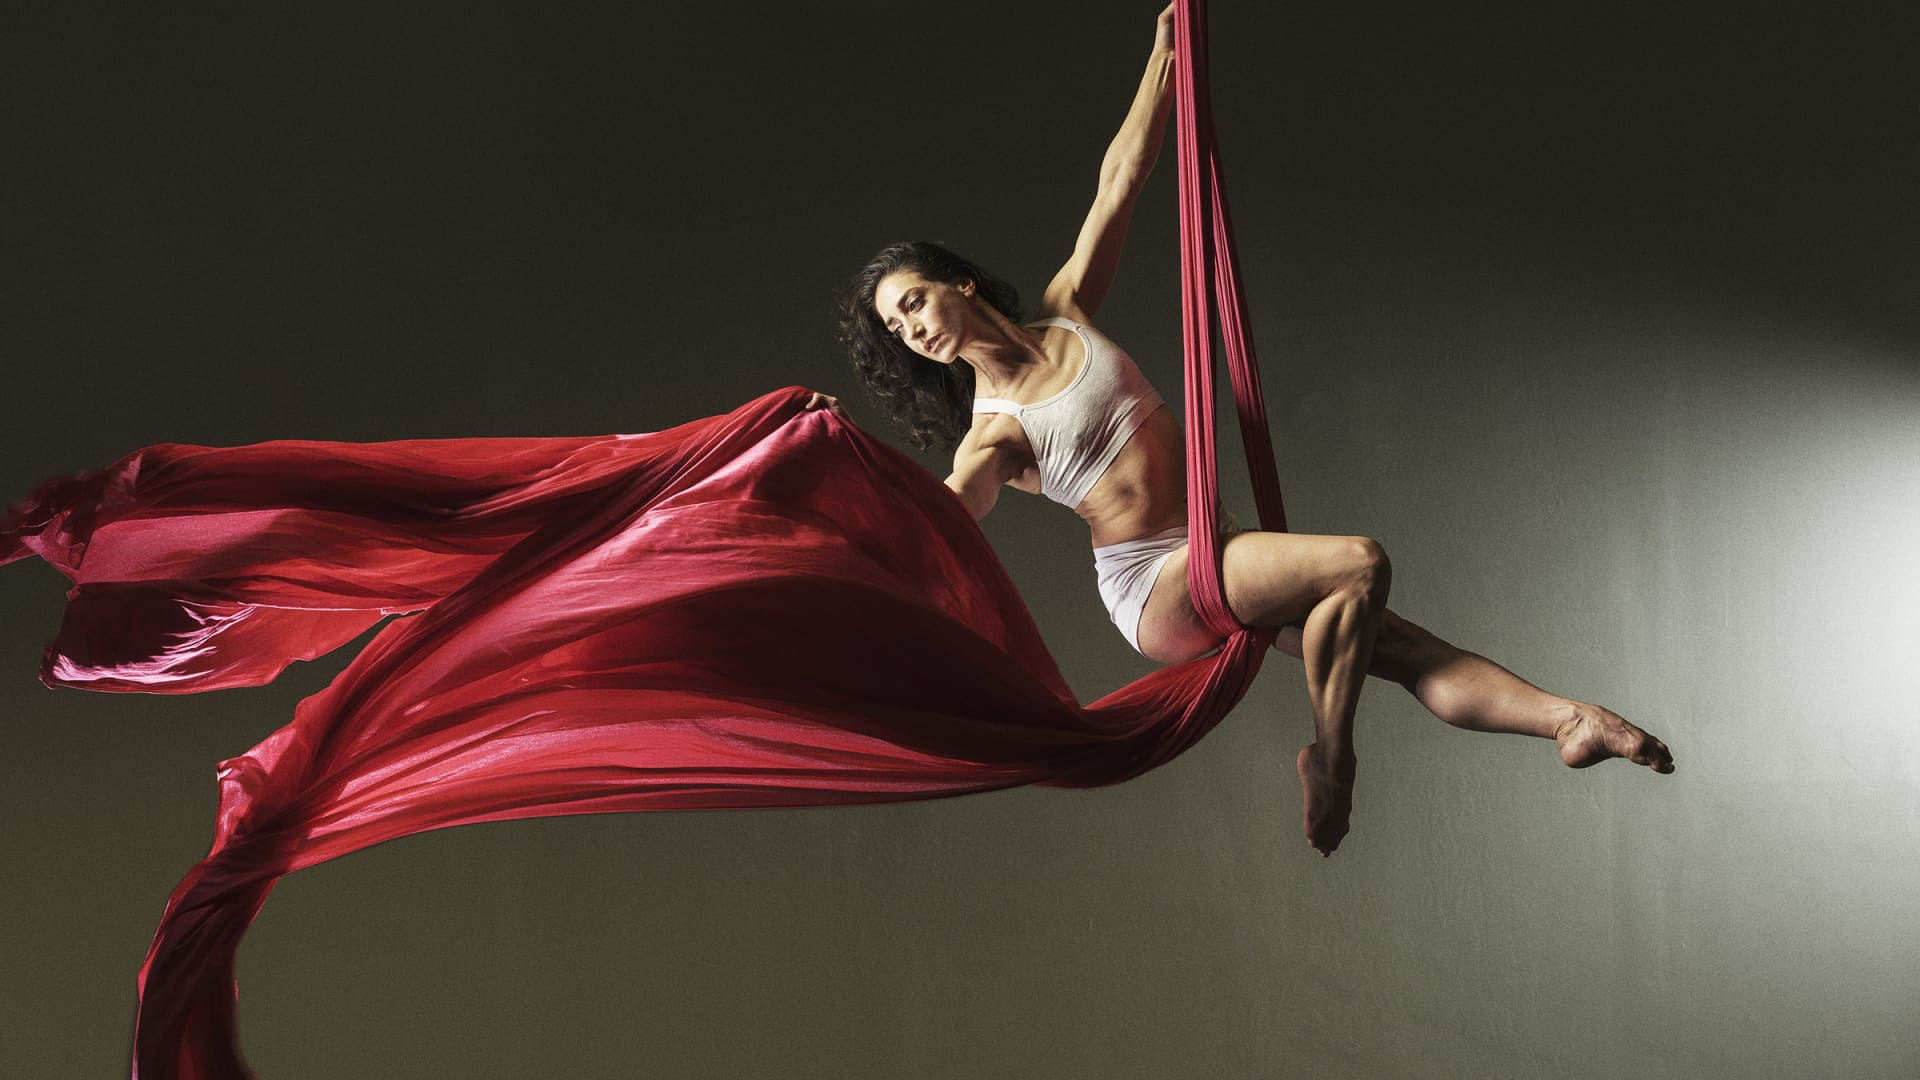 Kyla Ernst-Alper is an aerialist in New York City. She's never had an employer that offered her a 401(k) retirement plan in more than two decades of performing.